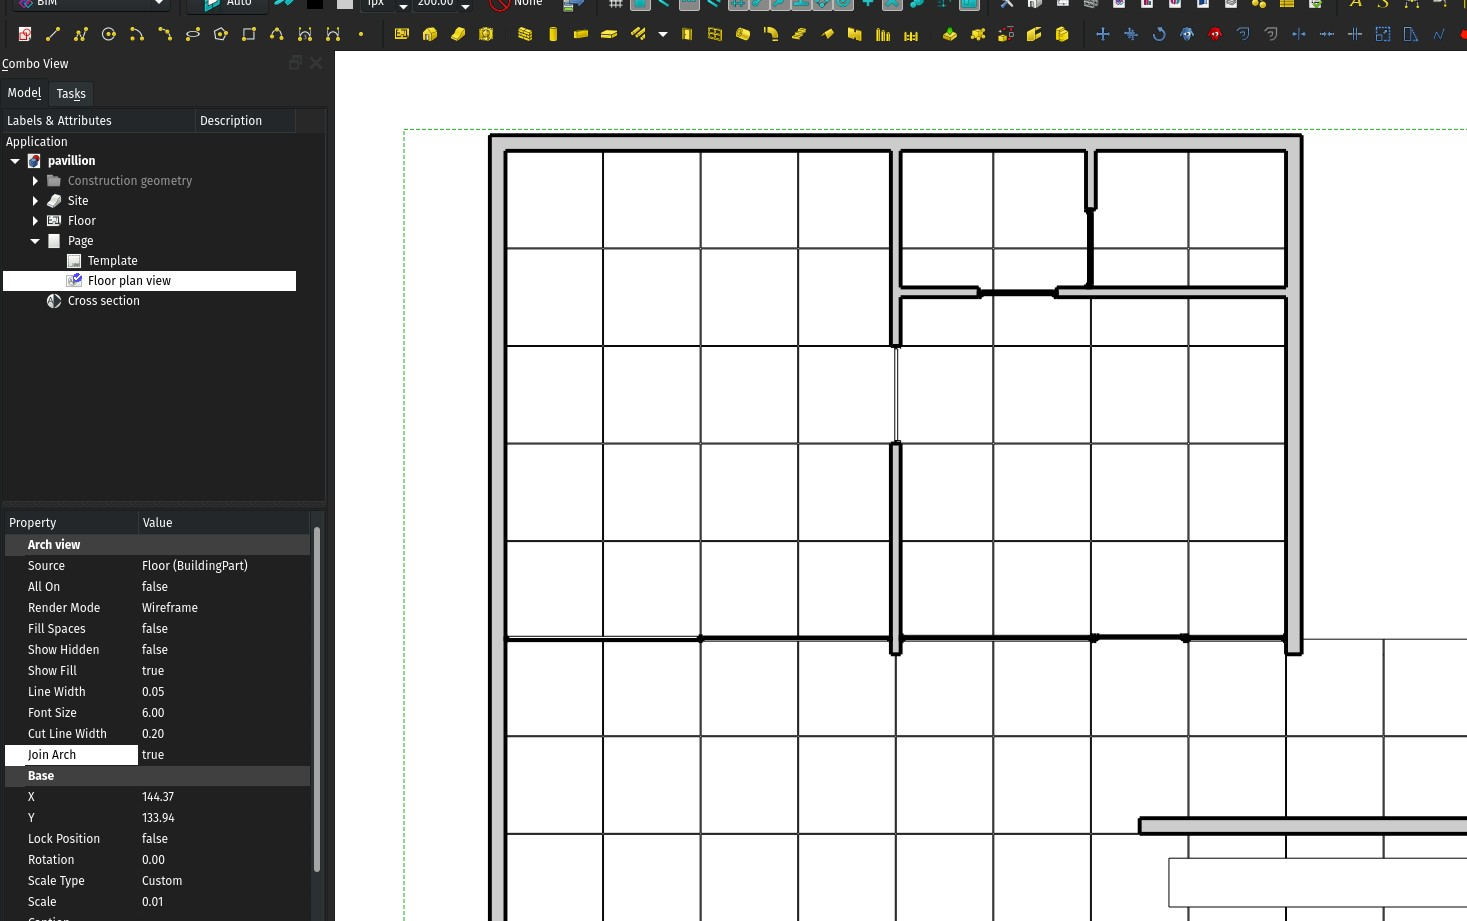 Properties of an ArchView in TechDraw